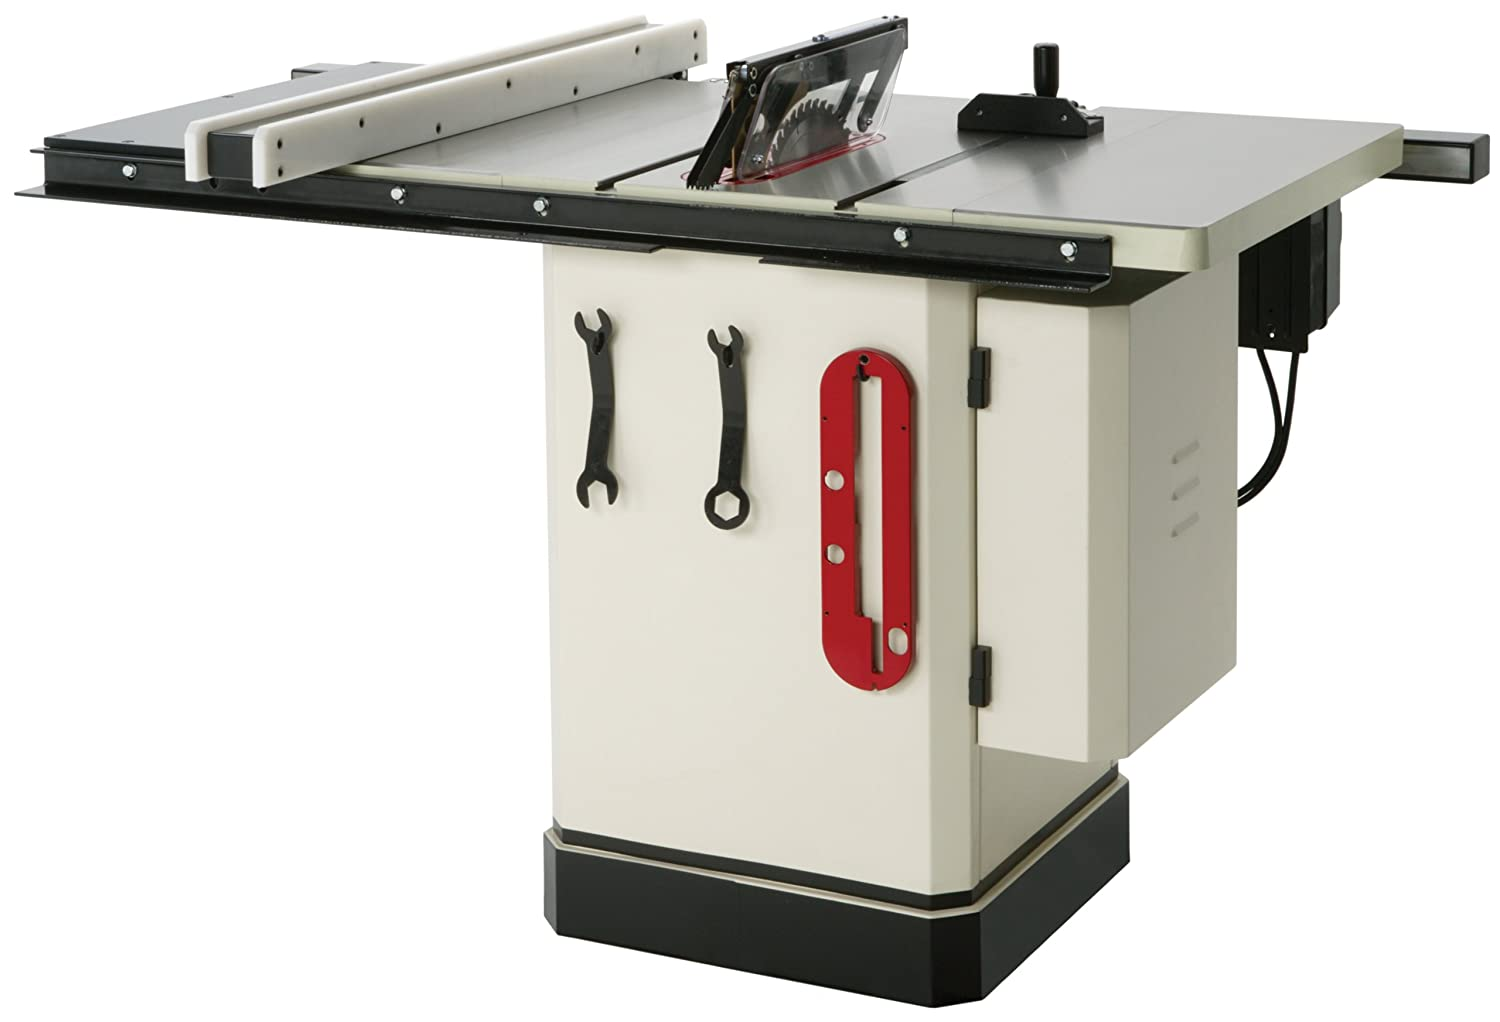 Shop fox w1819 3 hp 10 inch table saw with riving knife power shop fox w1819 3 hp 10 inch table saw with riving knife power table saws amazon keyboard keysfo Image collections